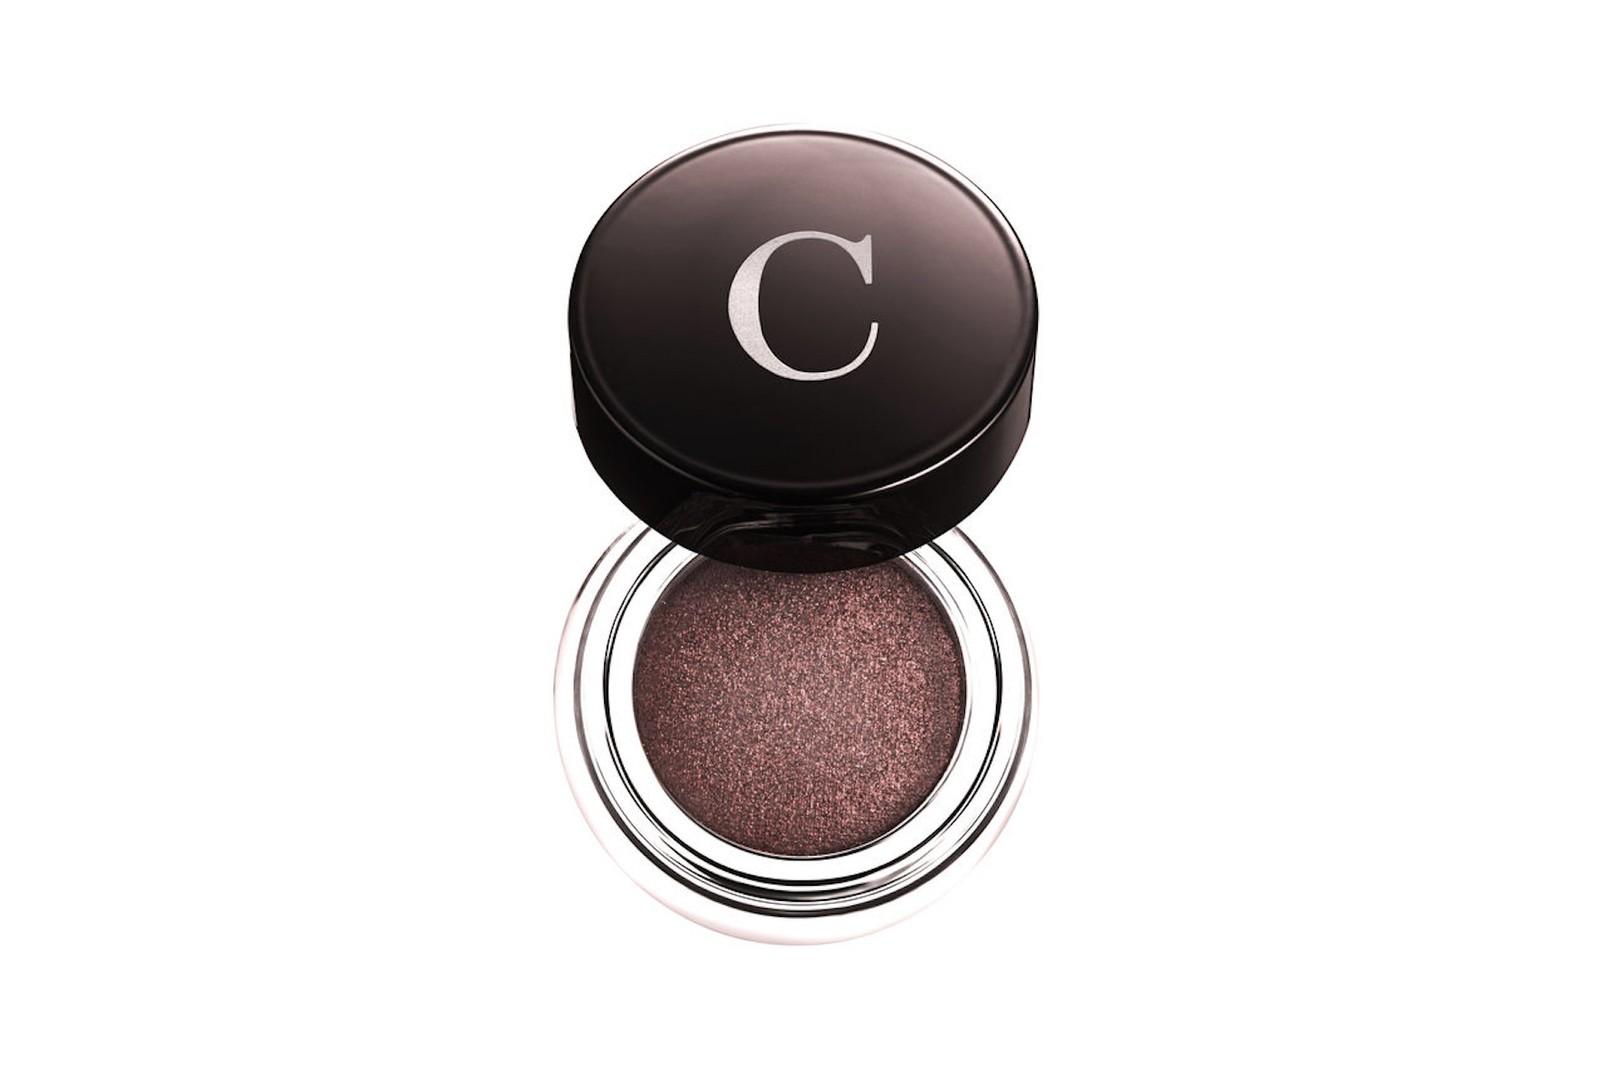 Best Cream Eye Shadows Milk Makeup Mac Cosmetics Charlotte Tilbury Beauty Eyes Easy Makeup Tom Ford RMS Hourglass